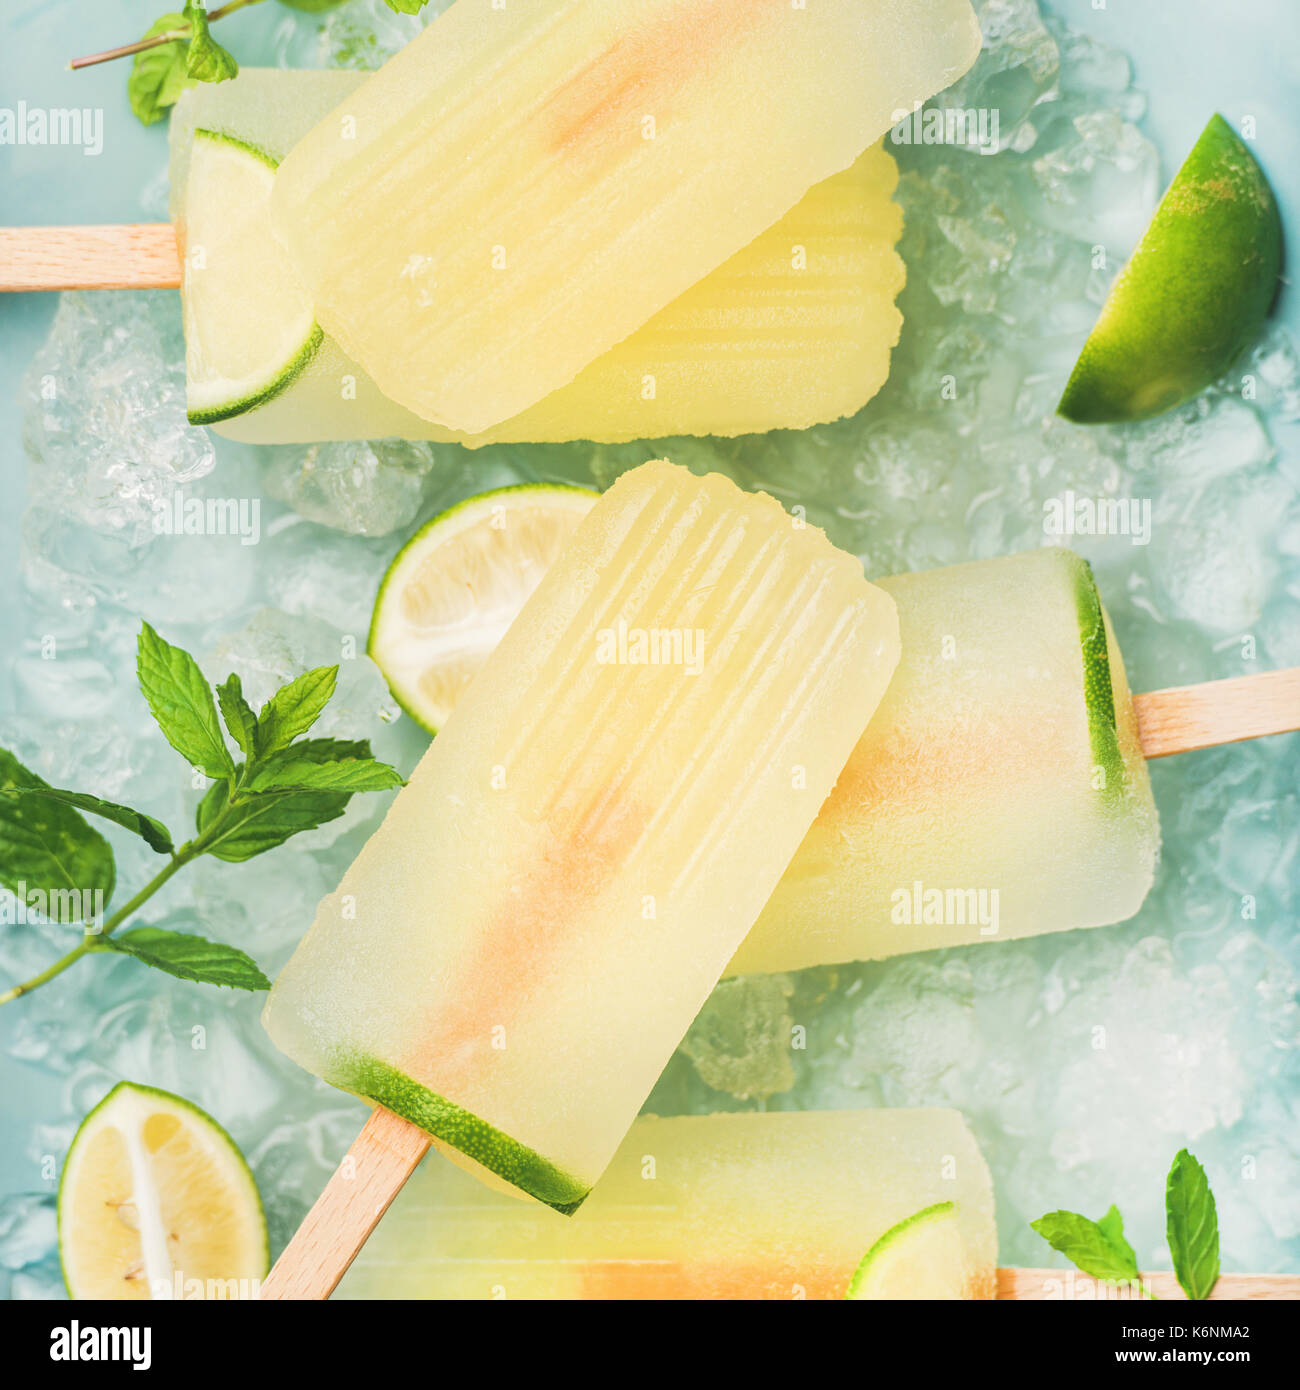 Summer lemonade popsicles with lime and chipped ice, square crop - Stock Image